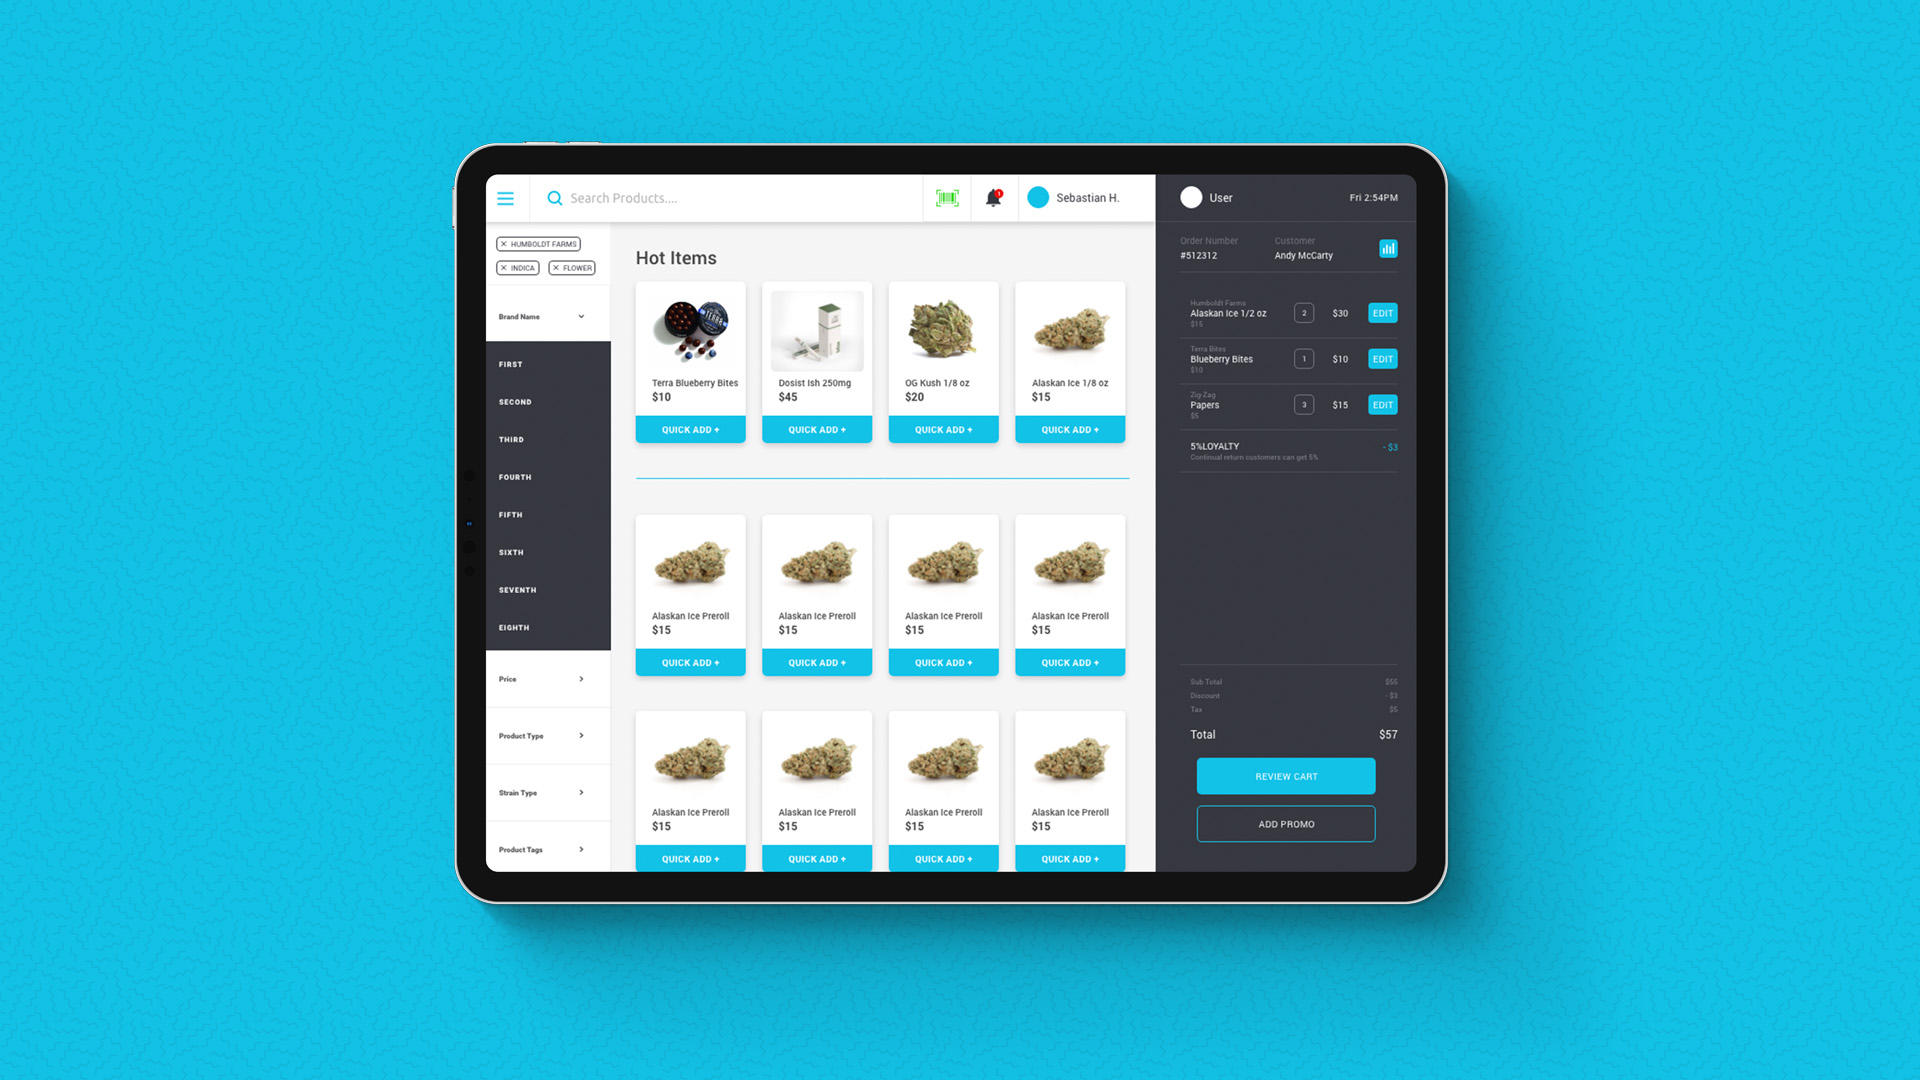 Visual Solutions - Simple, frictionless and visually appealing designs for making products work as flawlessly as possible. Iterative creation with user input ensures that your product satisfies the end goal.